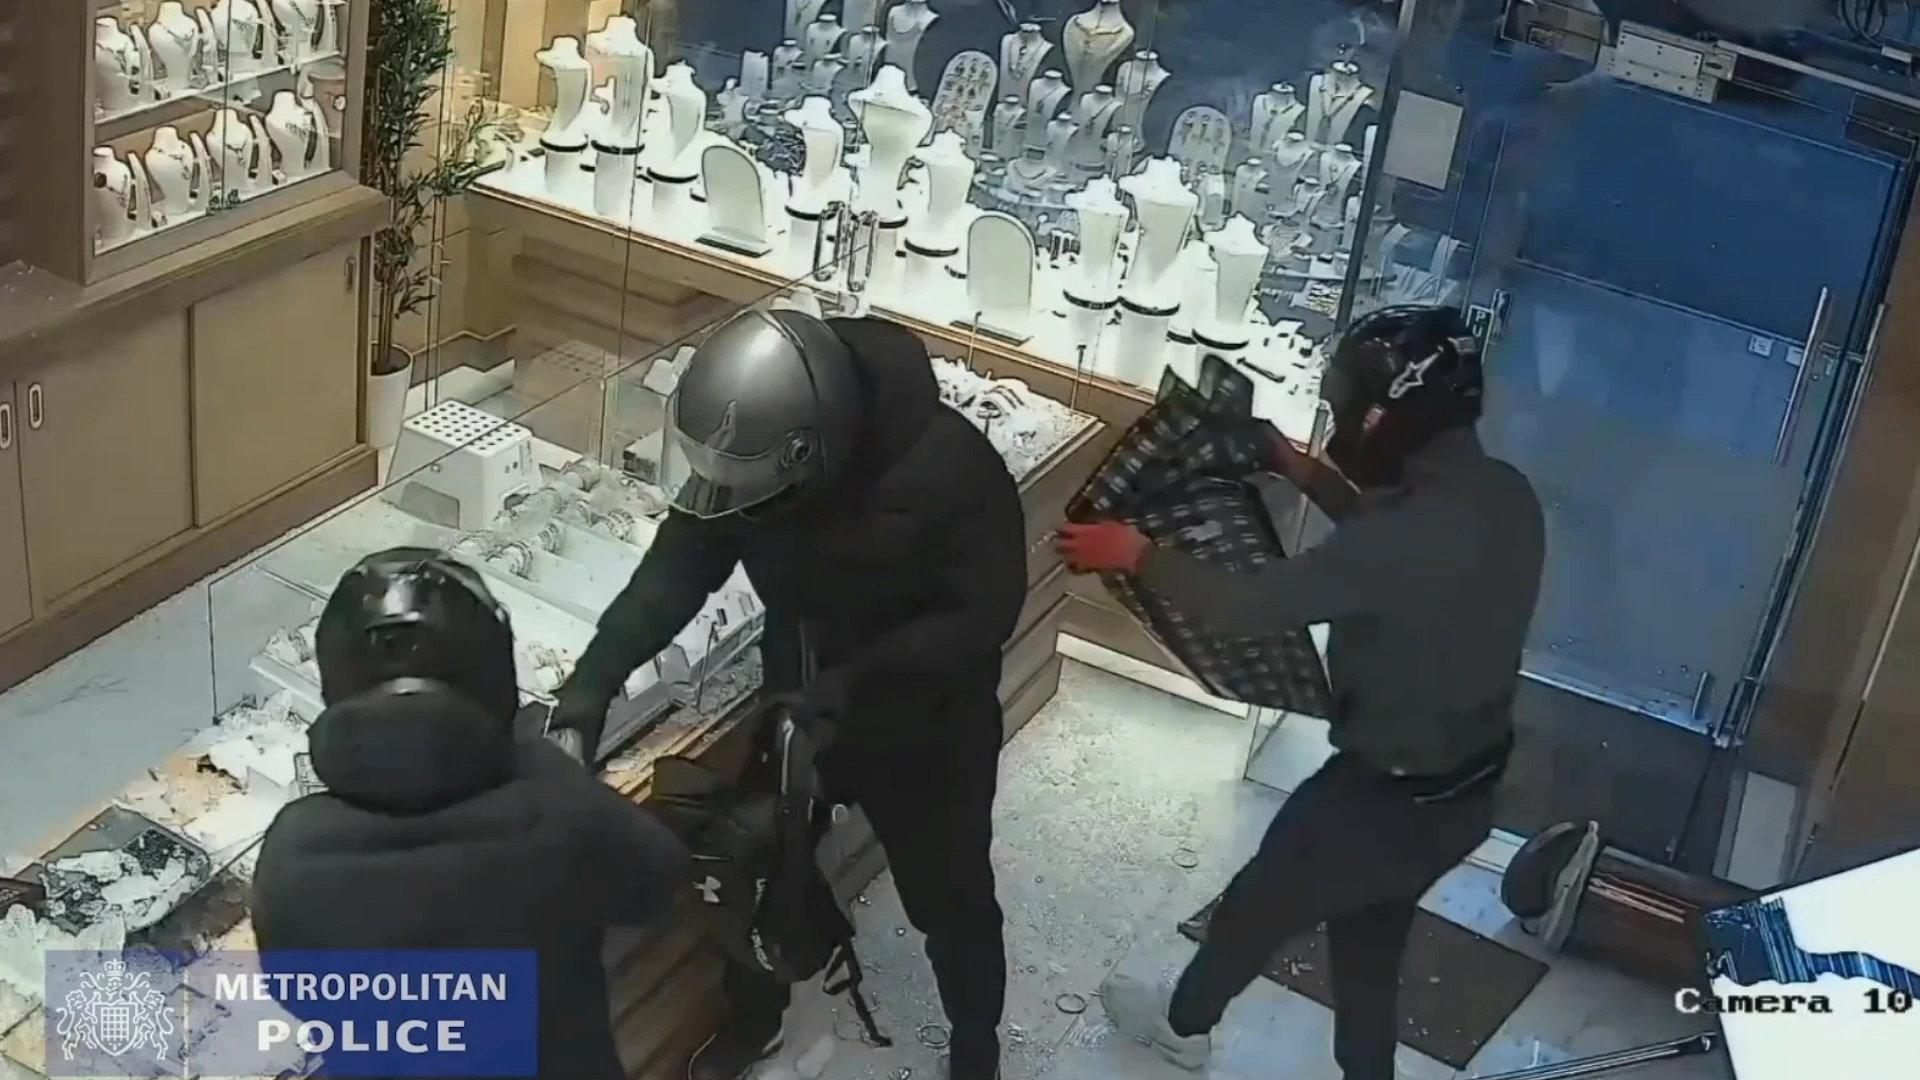 Video grab of members of the gang taking jewellery from the jewellery cases. Video shows the dramatic moment a gang of armed robbers smashed their way into a jewellery shop using a luxury Range Rover, before one the members of the gang was detained by a member of public attempting to get away. See National News story NNraid. A gang of armed robbers smashed their way into a jewellery shop using a luxury Range Rover, before members of the public stopped one of them from running away. Ben Wegener, 34, pleaded guilty to robbery, dangerous driving, and possession of offensive weapon, criminal damage and receiving stolen goods. He and two accomplices drove a black Range Rover through the front of a jewellery shop in Shepherds Bush, west London. When the vehicle narrowly missed the people inside, the robbers got out and then smashed the glass display cases using a sledgehammer and a hammer, and put items of jewellery into bags.